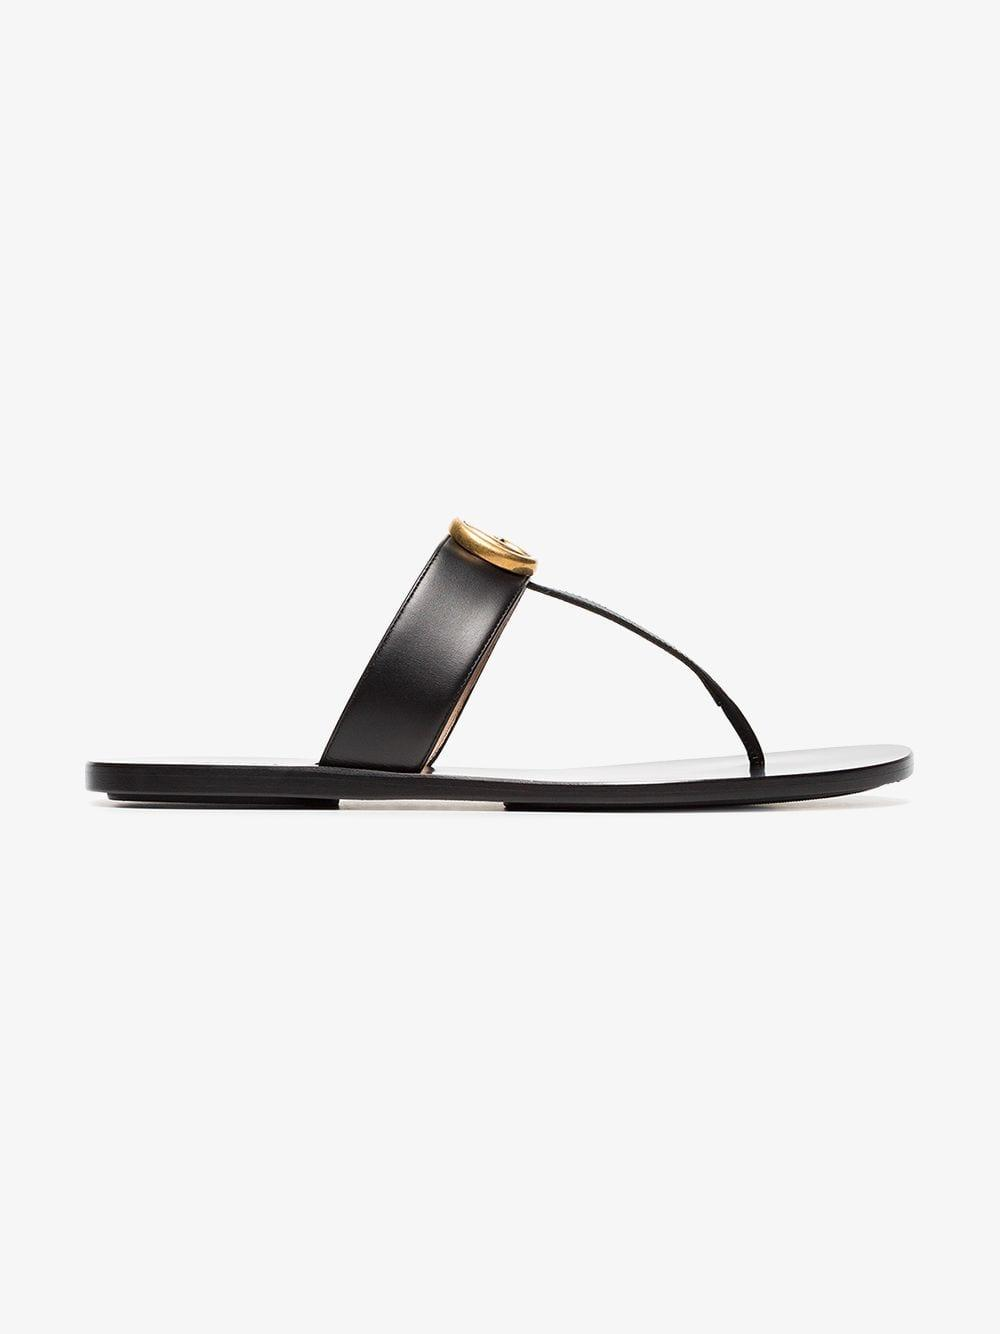 eaa866158bf0 Lyst - Gucci Black Double G Leather Thong Sandals in Black - Save 13%